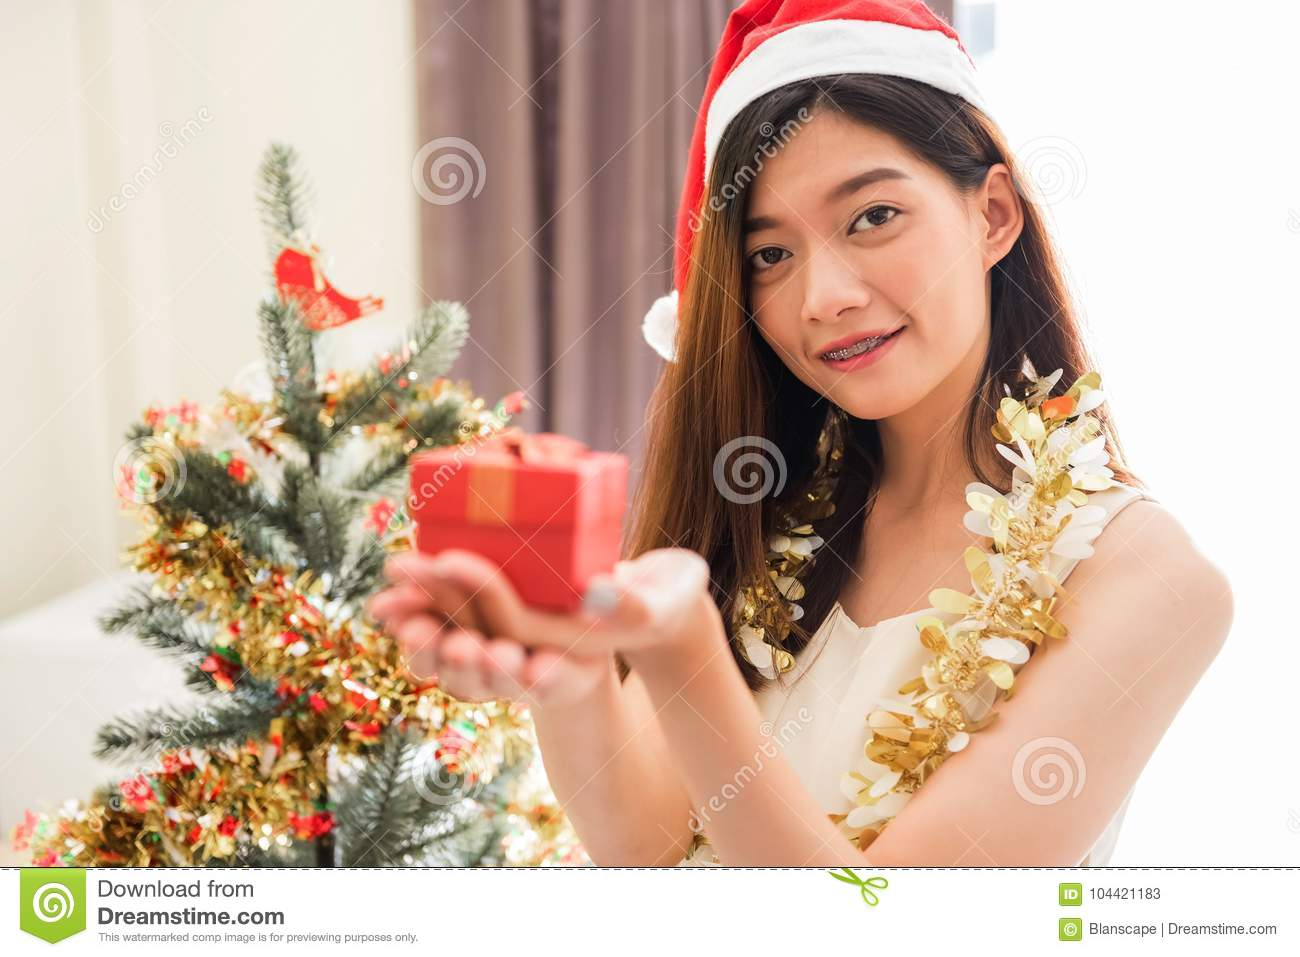 Happy Girl With Christmas Gift Stock Image - Image of home, december ...